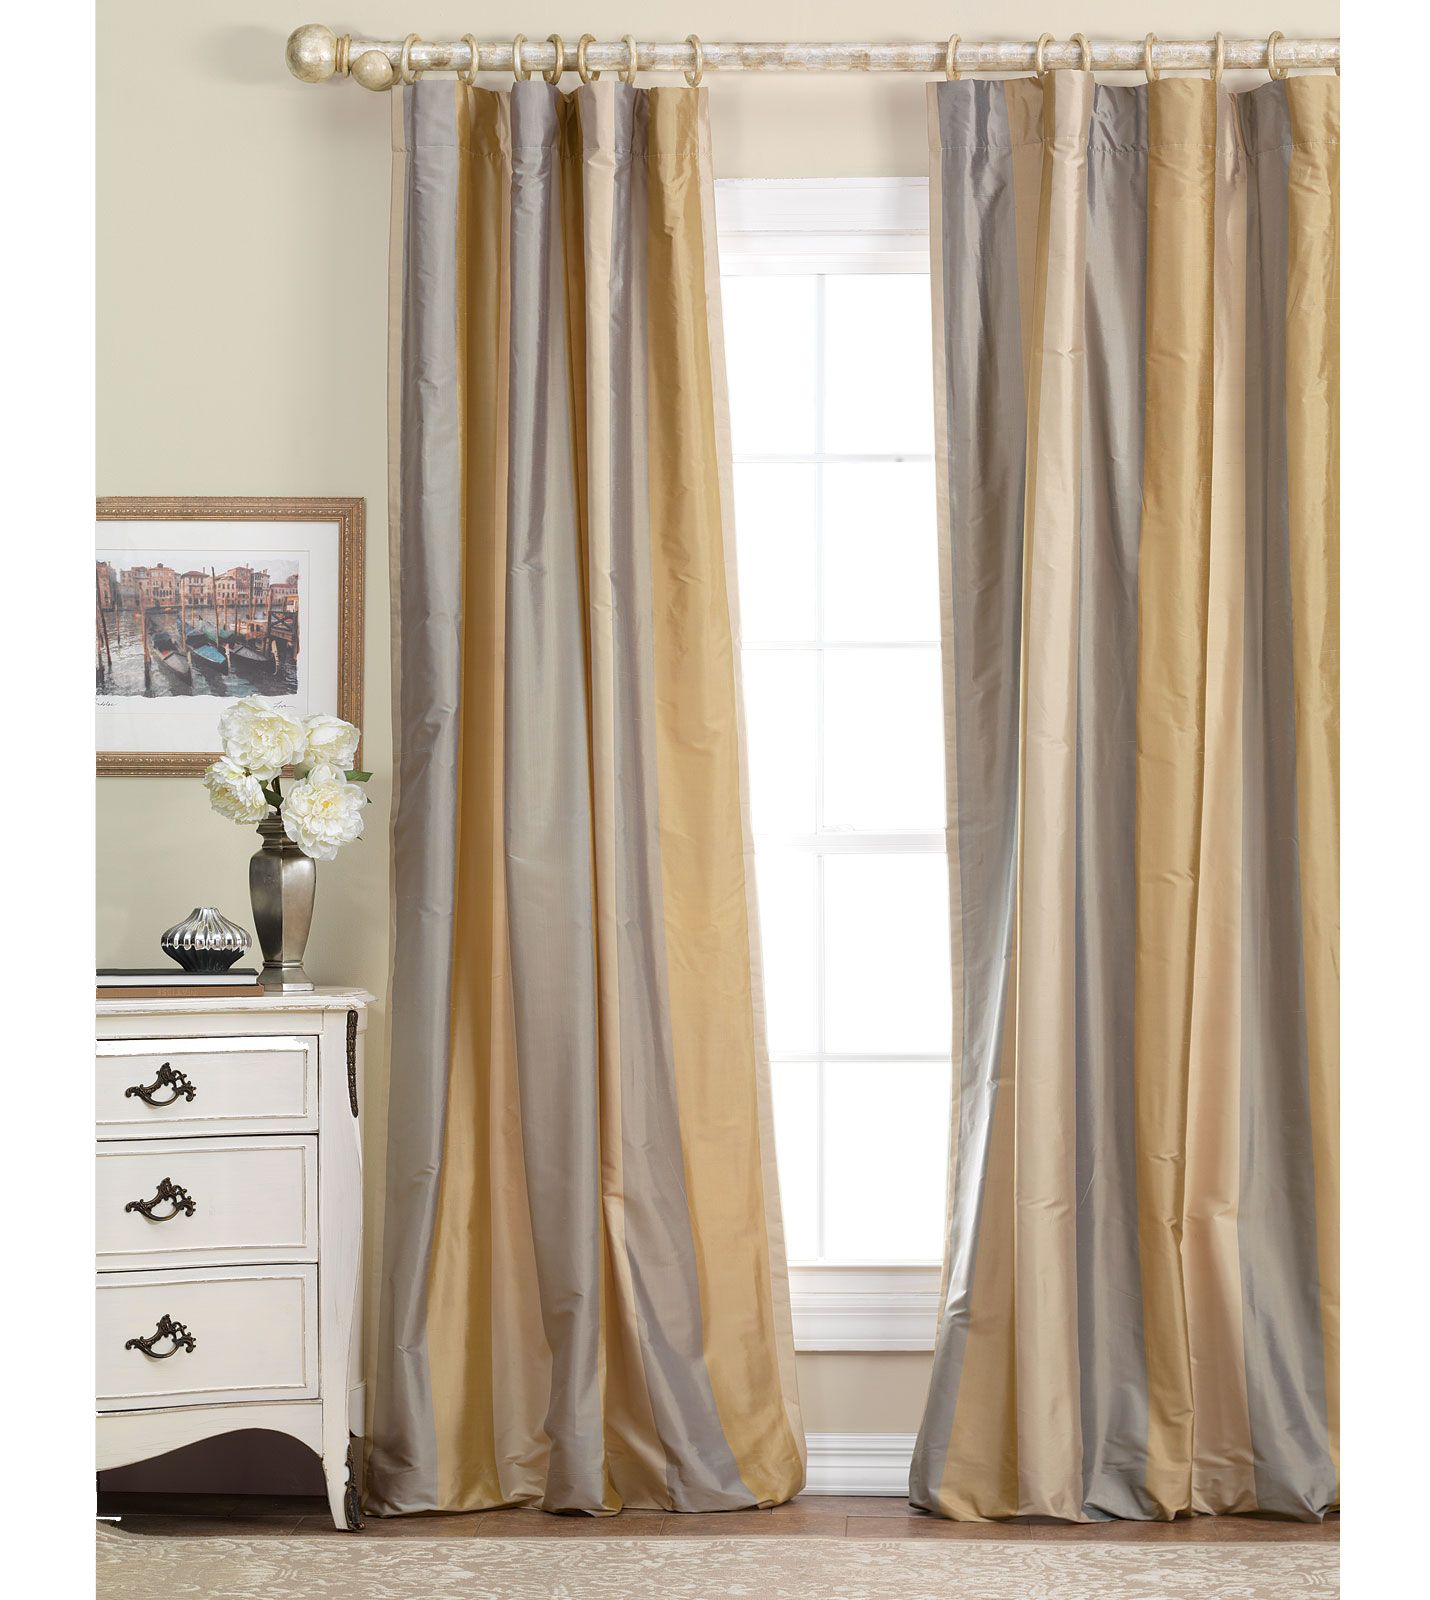 Gold And Gray Silk Curtains Luxury Bedding By Eastern Accents Memoir Silk Stripe Collection